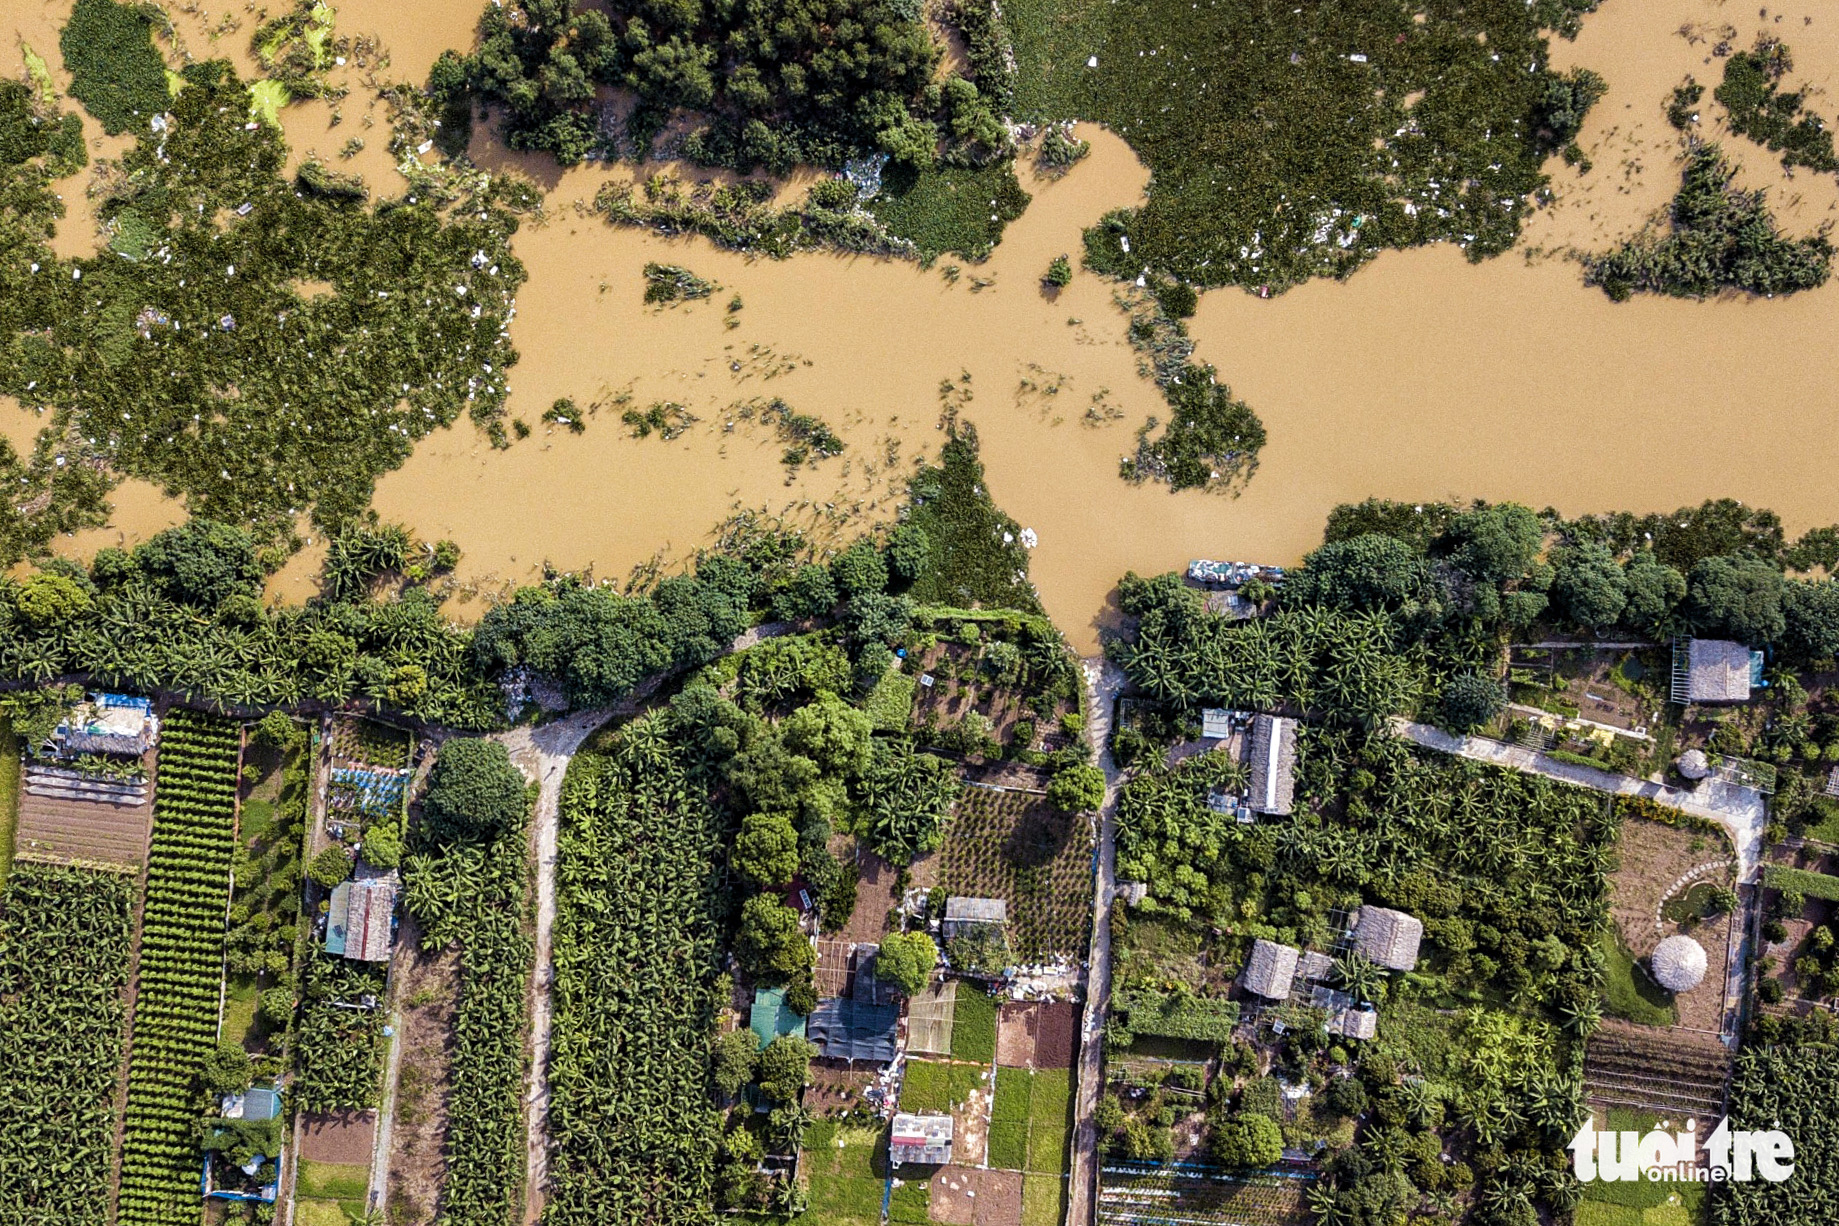 A bird's-eye view of rising water level in the Hong River in Hanoi, August 22, 2020. Photo: L.V. / Tuoi Tre